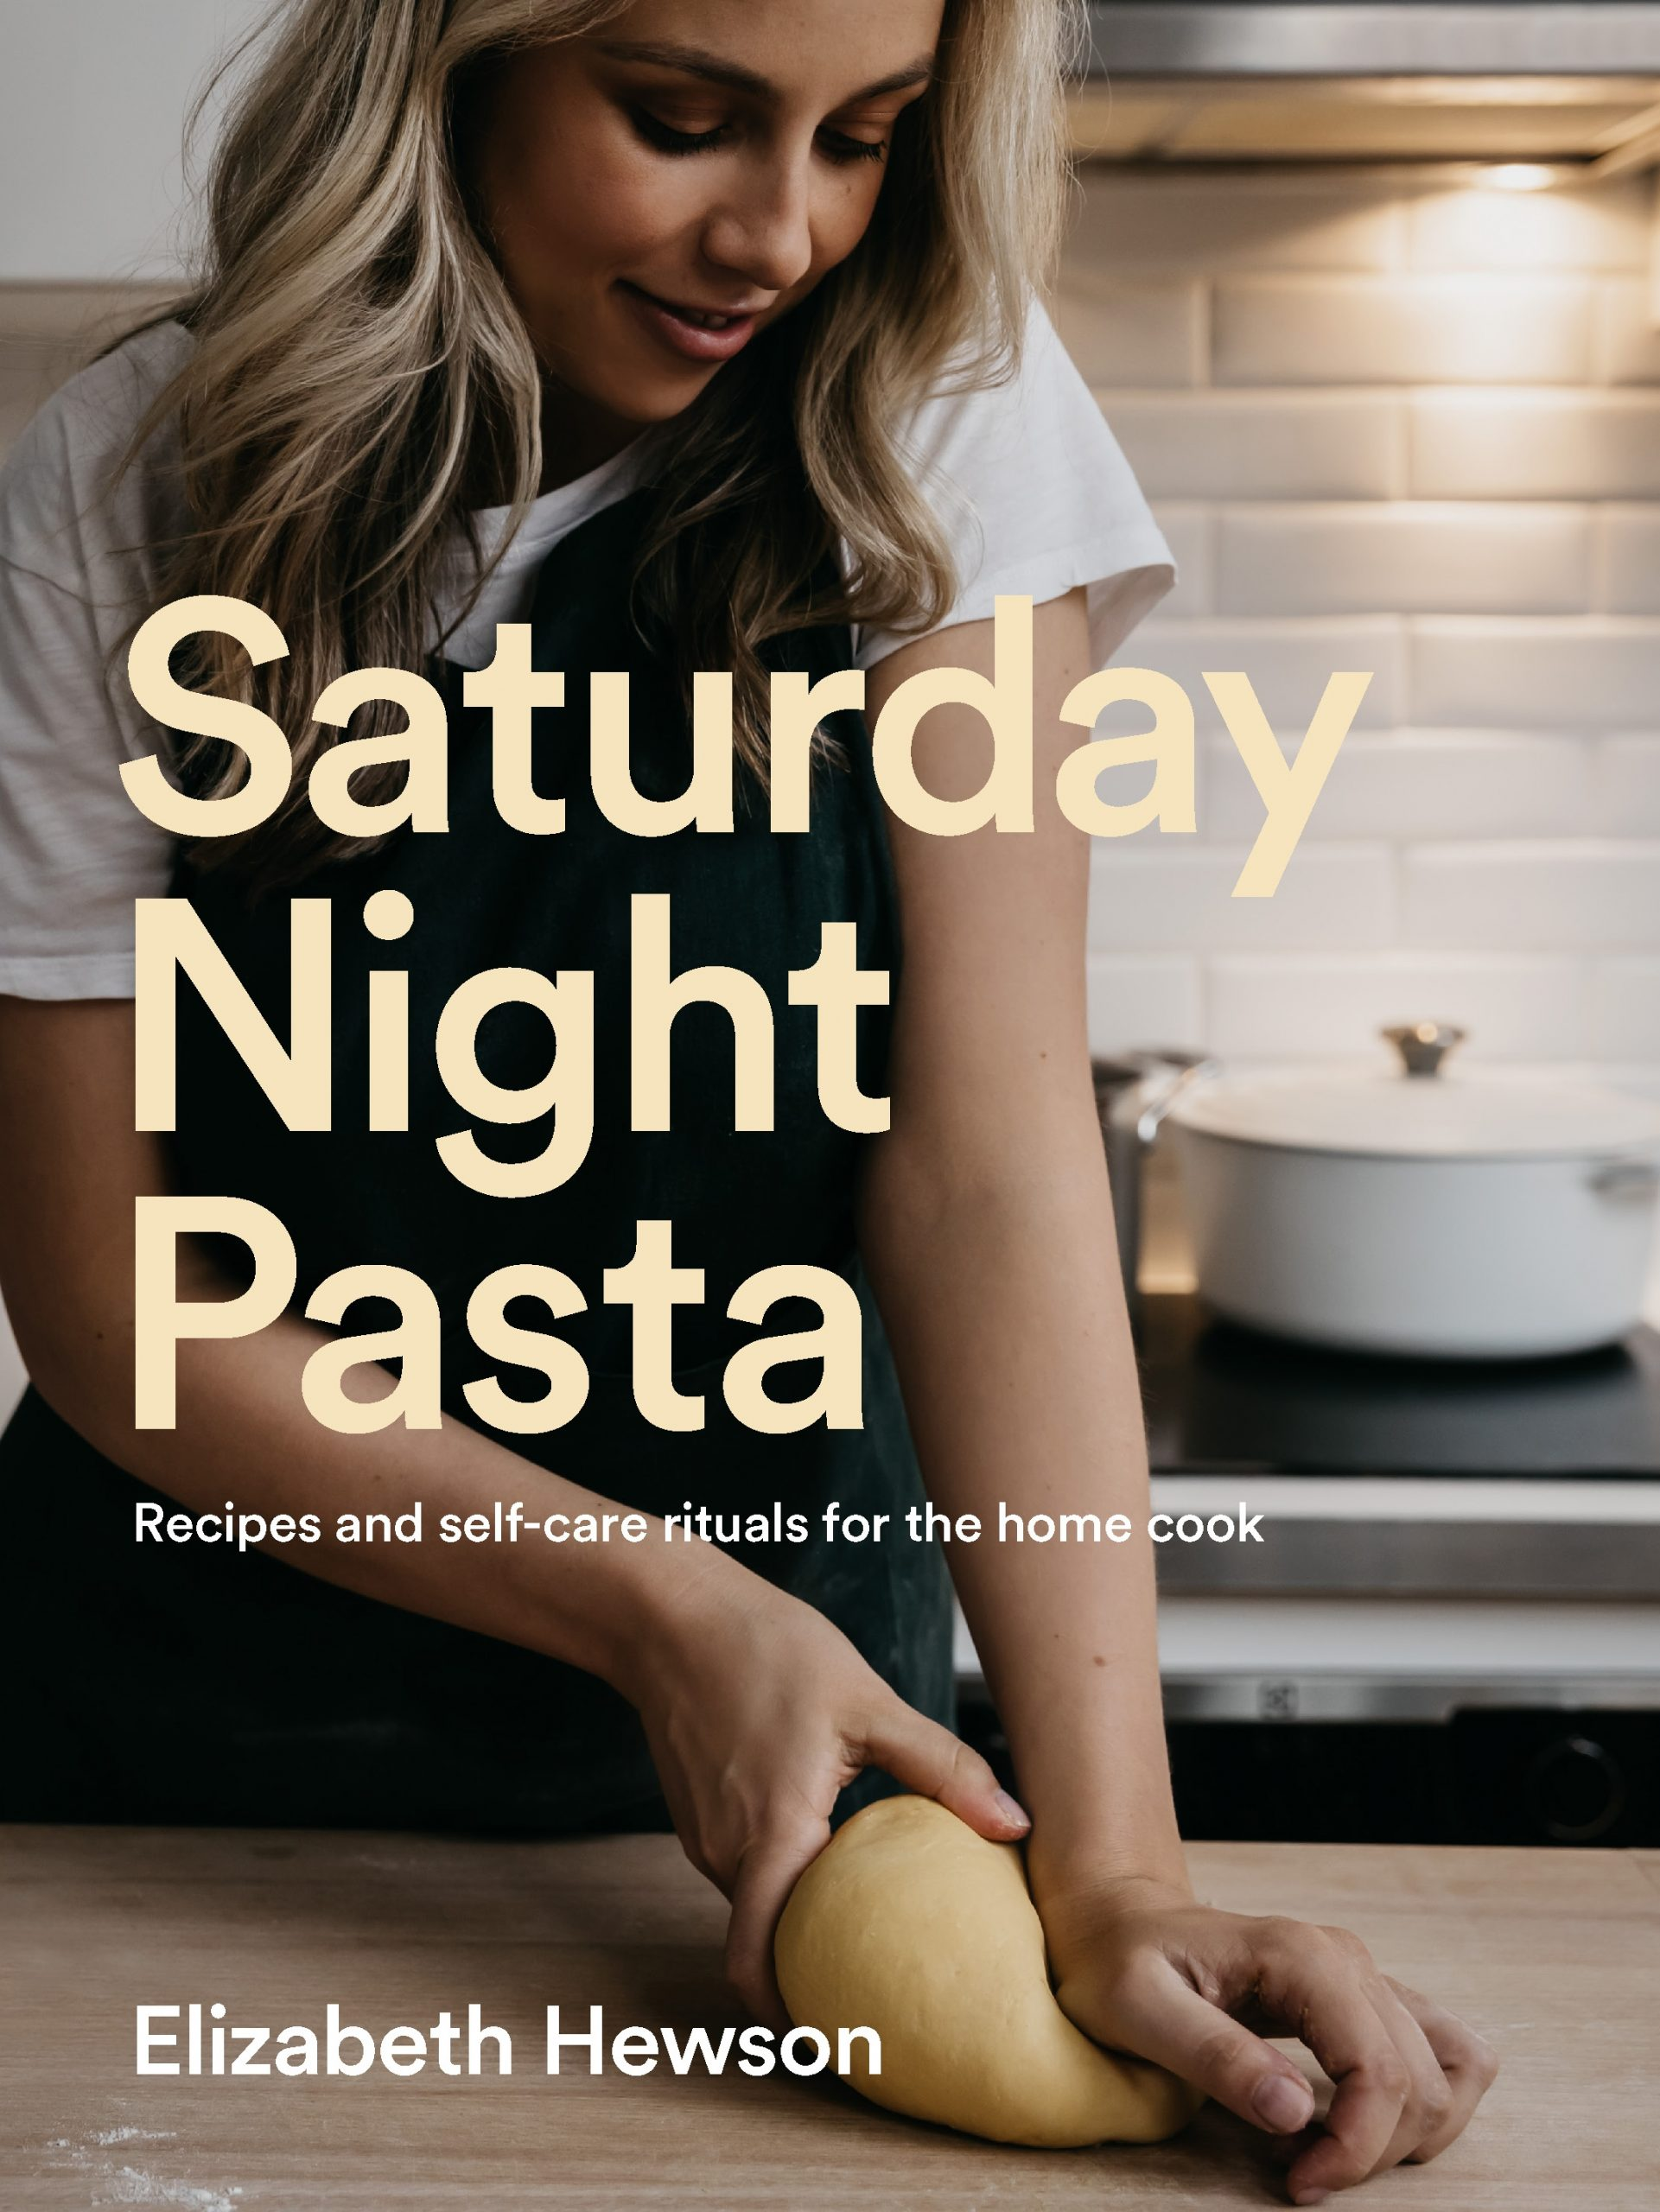 Saturday Night Pasta: Recipes and self-care rituals for the home cook